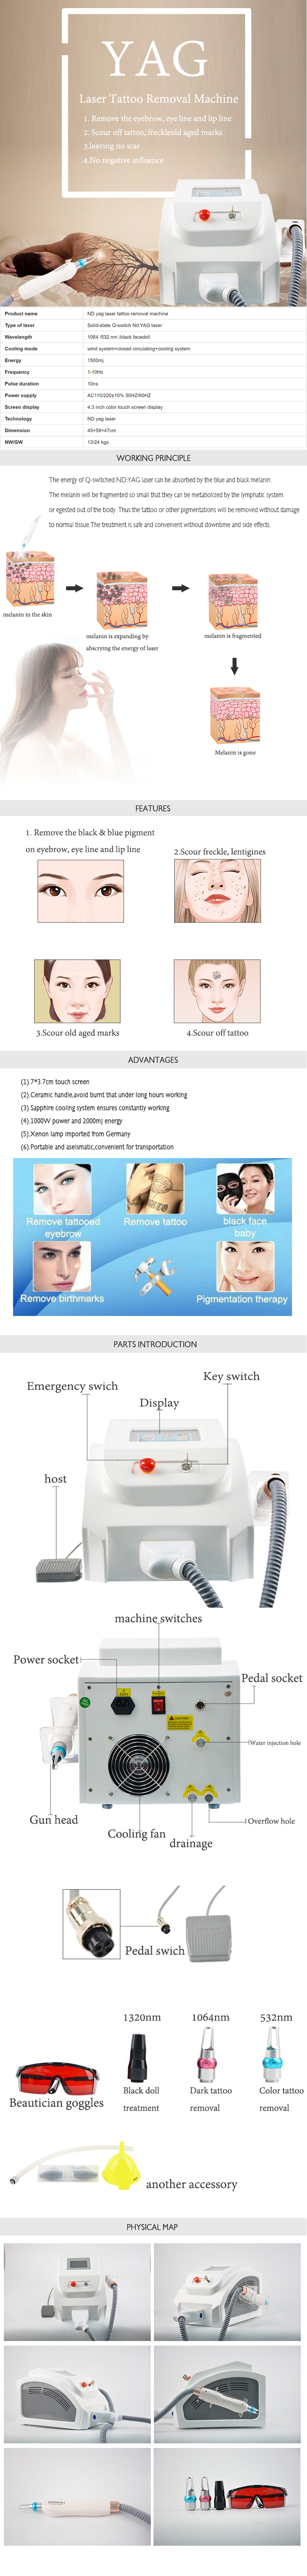 YG03 Yag Laser Tattoo Removal Machine product details